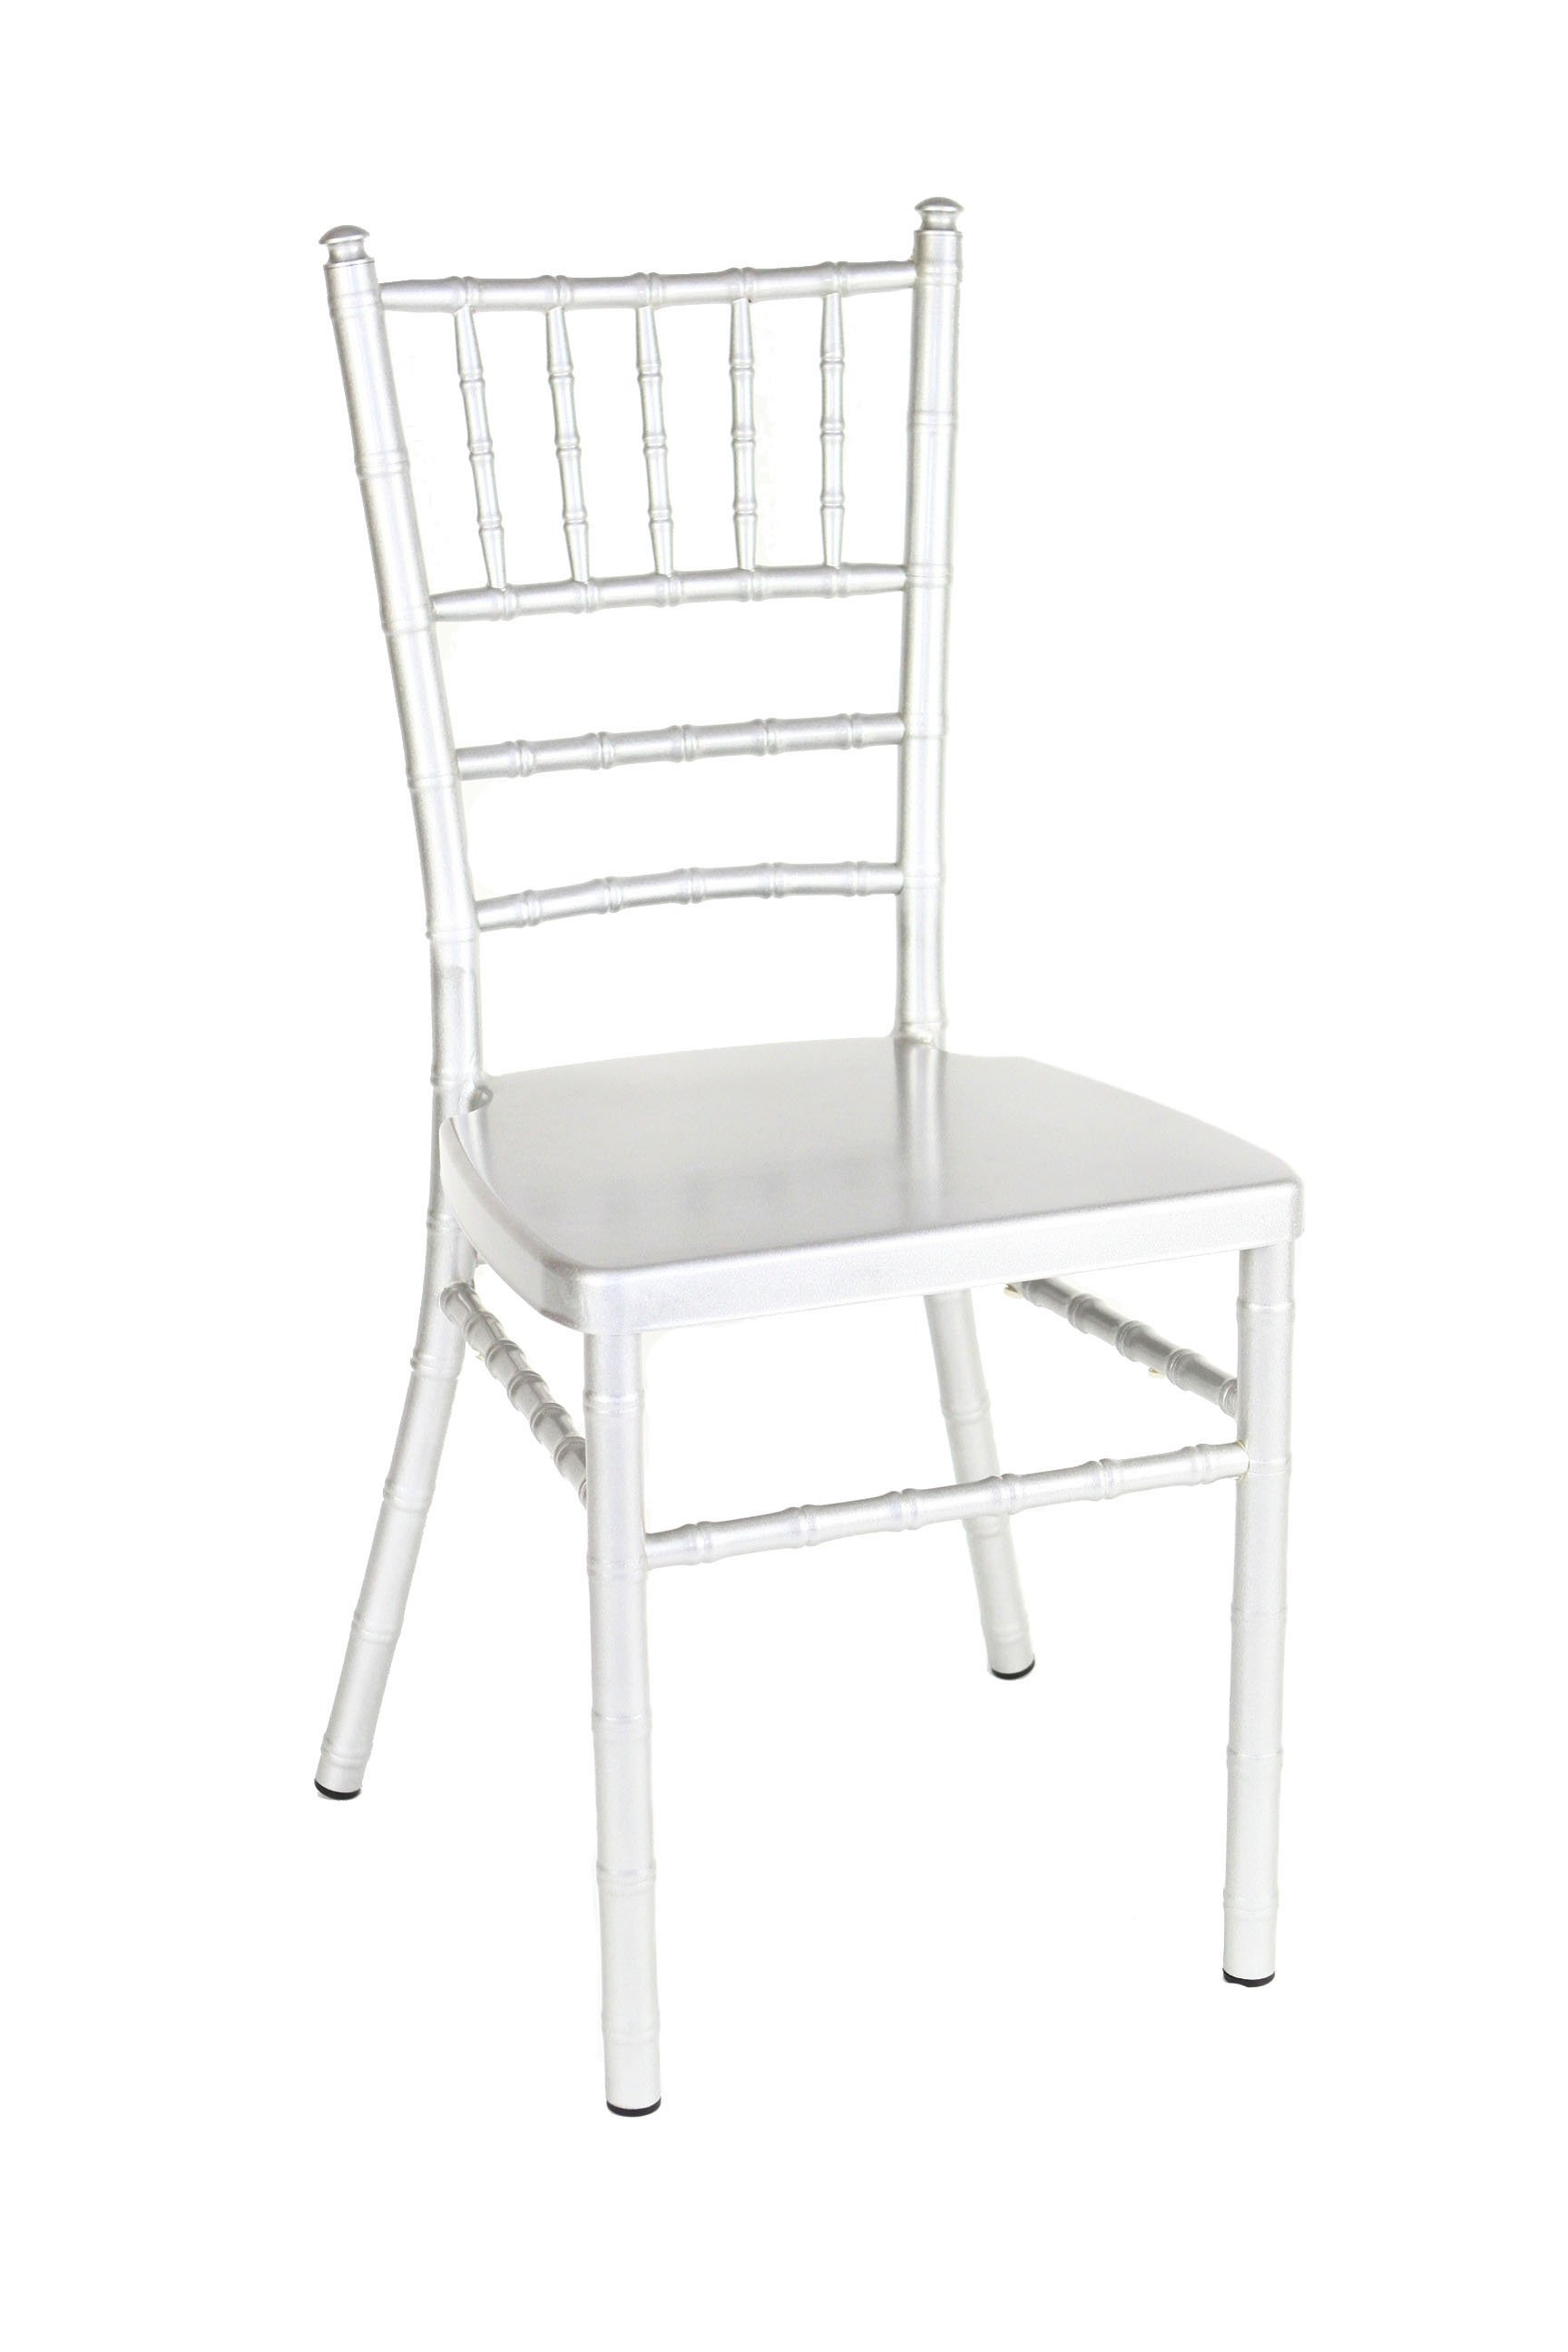 Chiavari chairs rental chicago chairs for - Chiavari Chairs Rental Chicago Chairs For 52